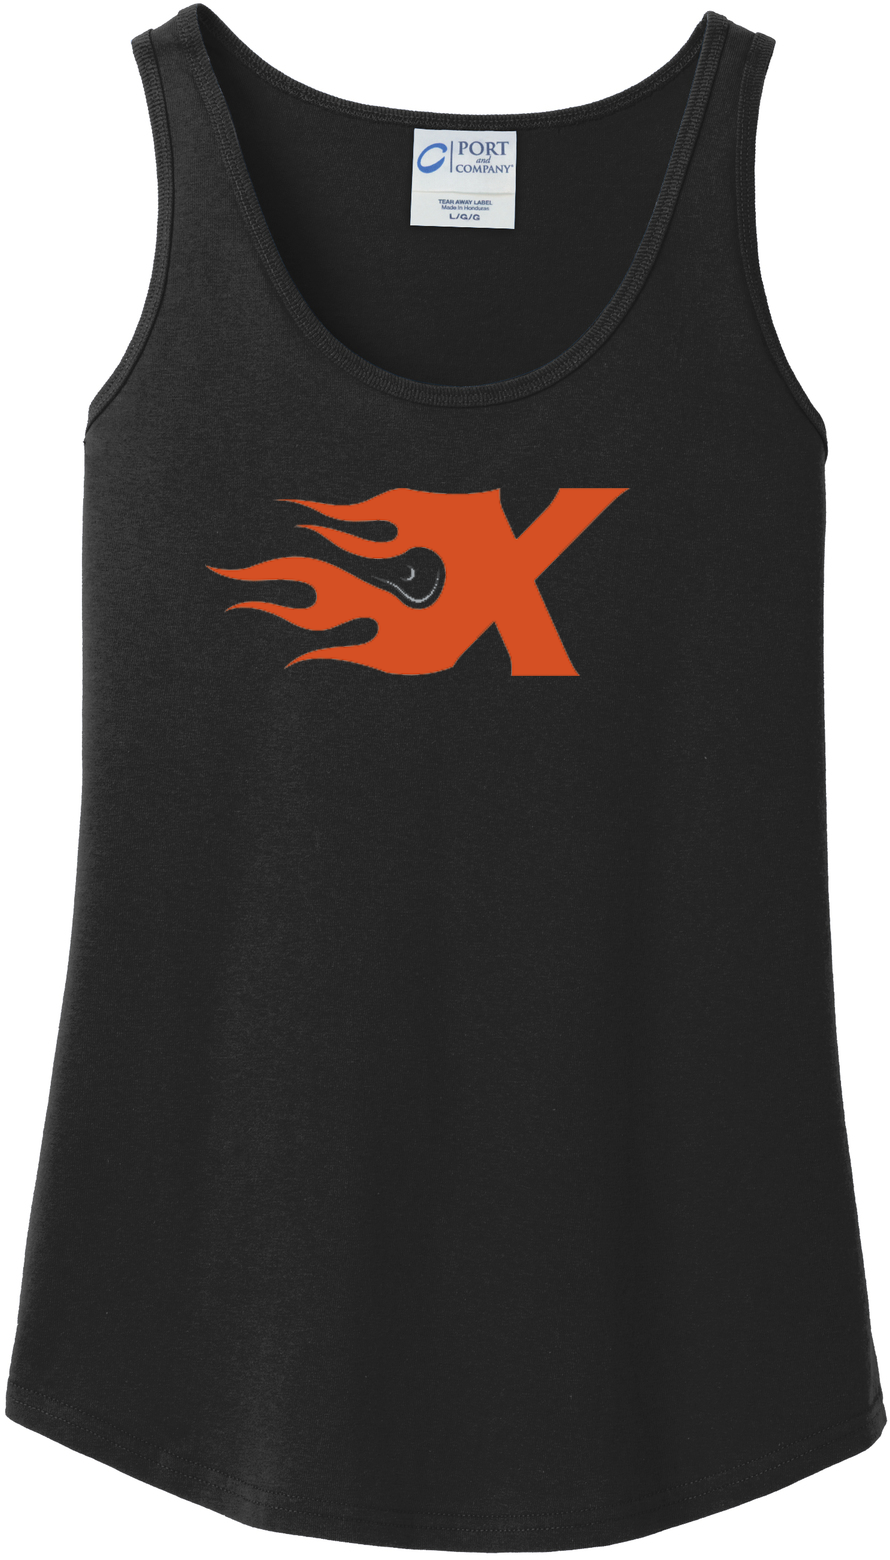 Xtreme Lacrosse Women's Black Tank Top